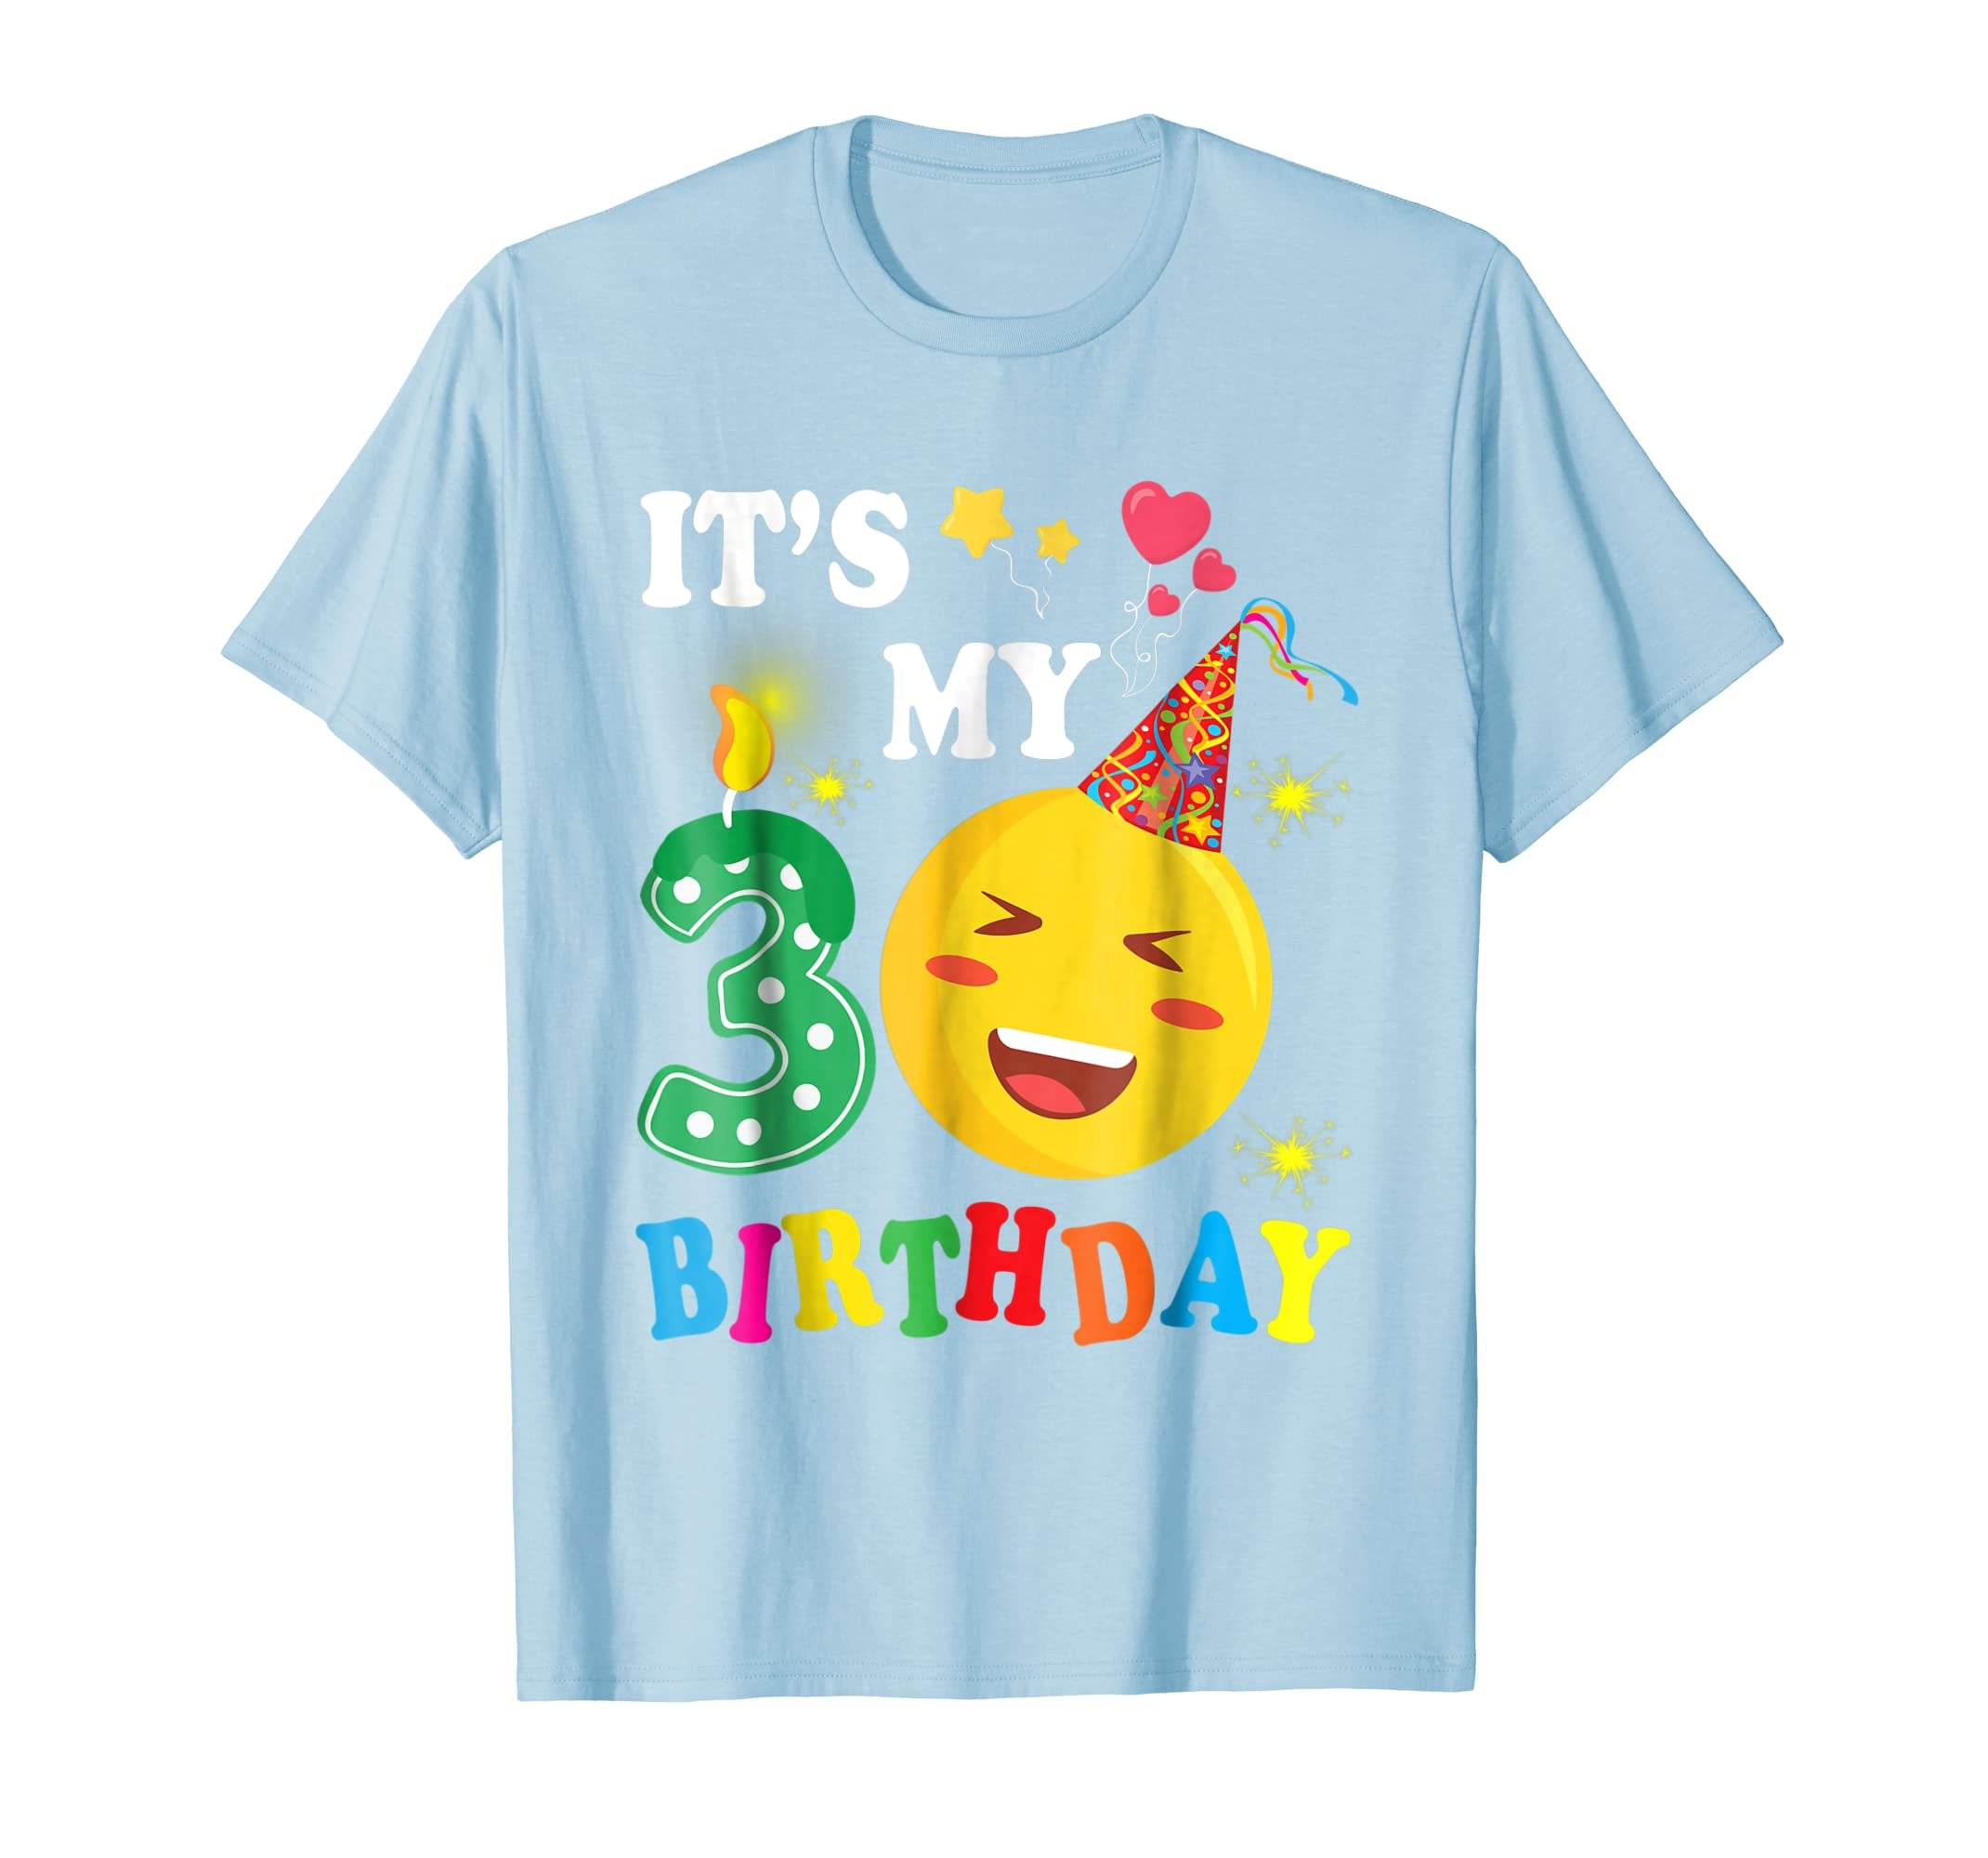 Balloons Candles Stars Emotion Face Shirt It's My 3 Birthday-azvn